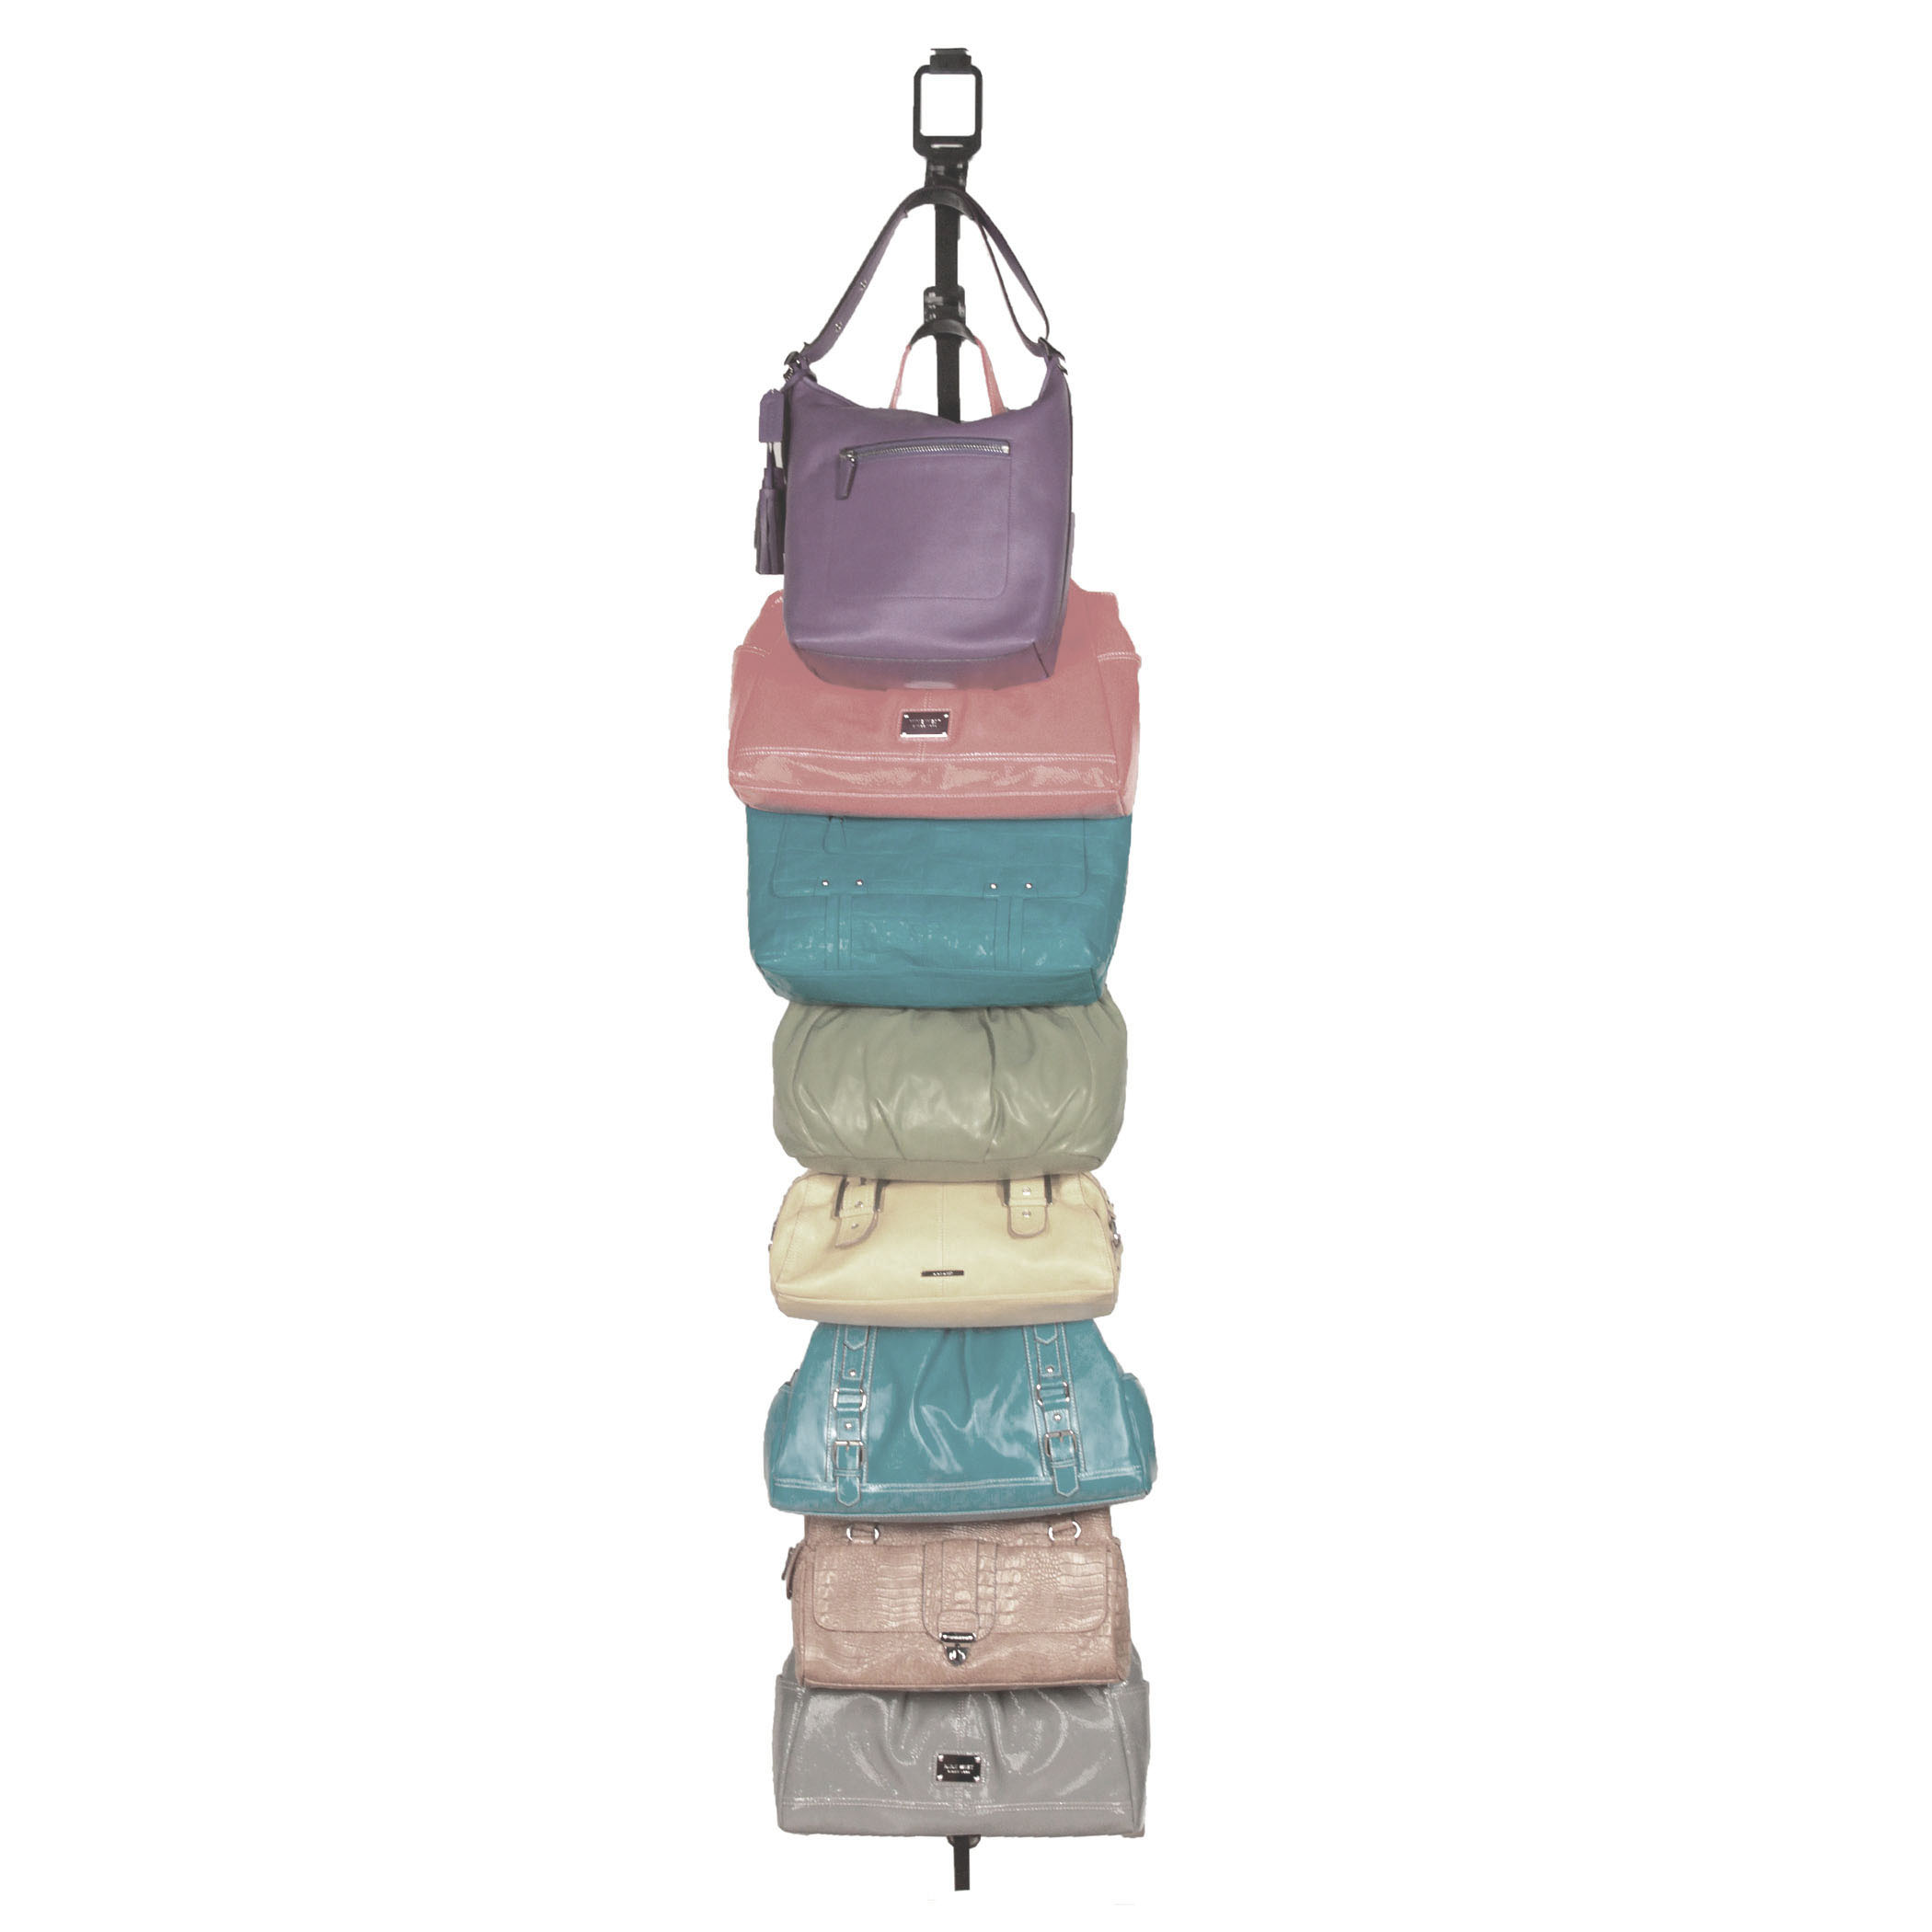 PurseStor Item #13908 - Eight patented contoured hooks to safely hold purses up to 10 pounds by their handles, preventing creases and stress. Mounts on the wall or a door.Dimensions: 2.76